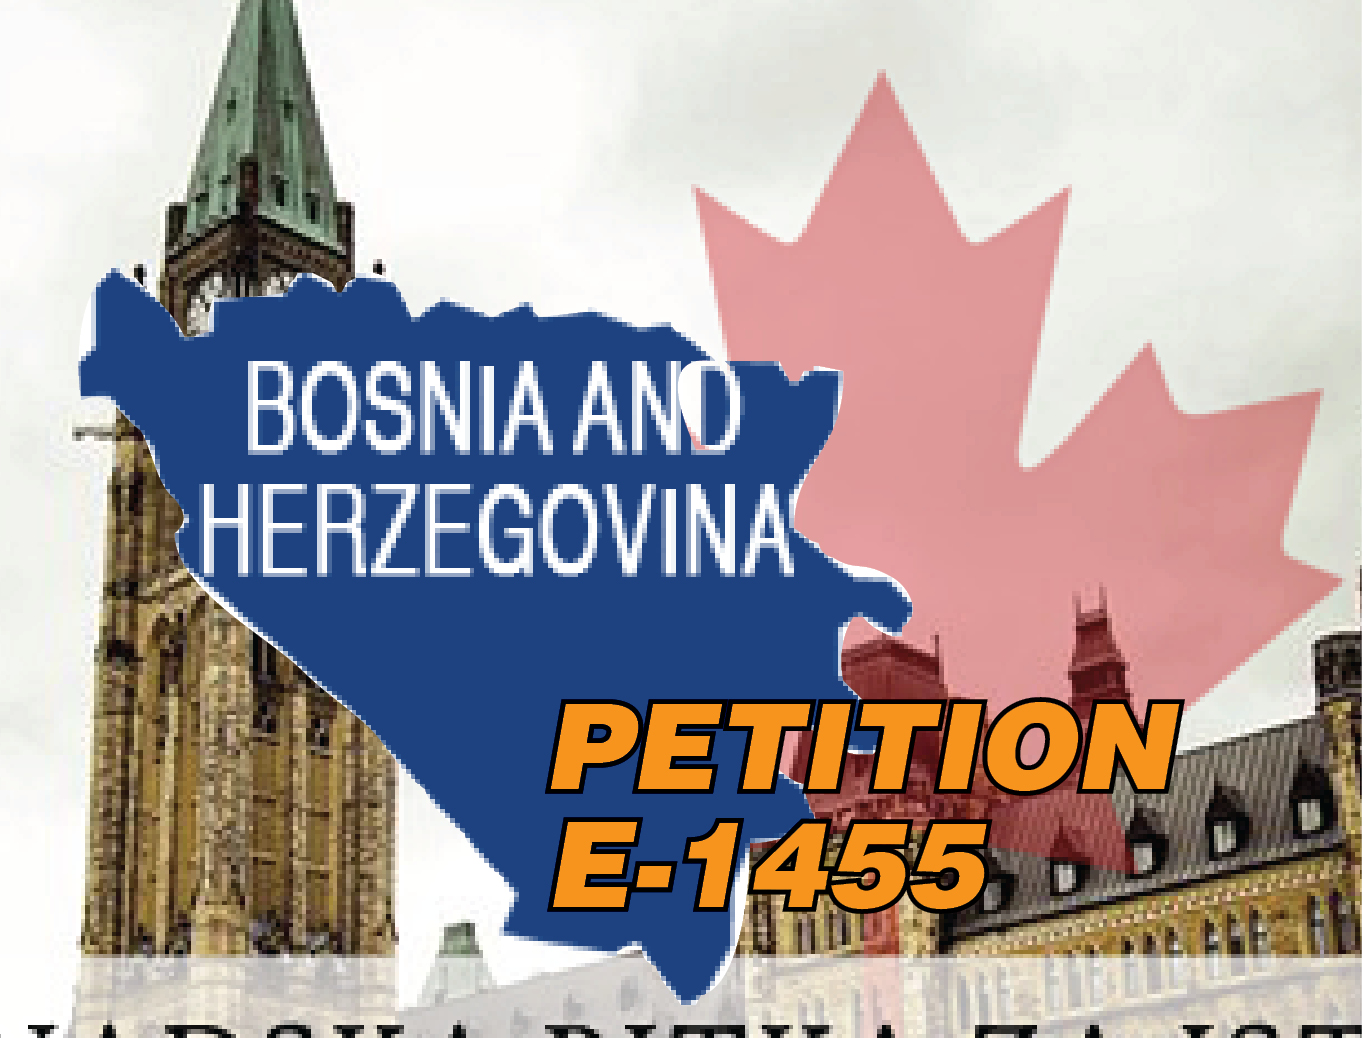 Petition e-1455 to re-open Canadian embassy in	Sarajevo, Bosnia and Herzegovina